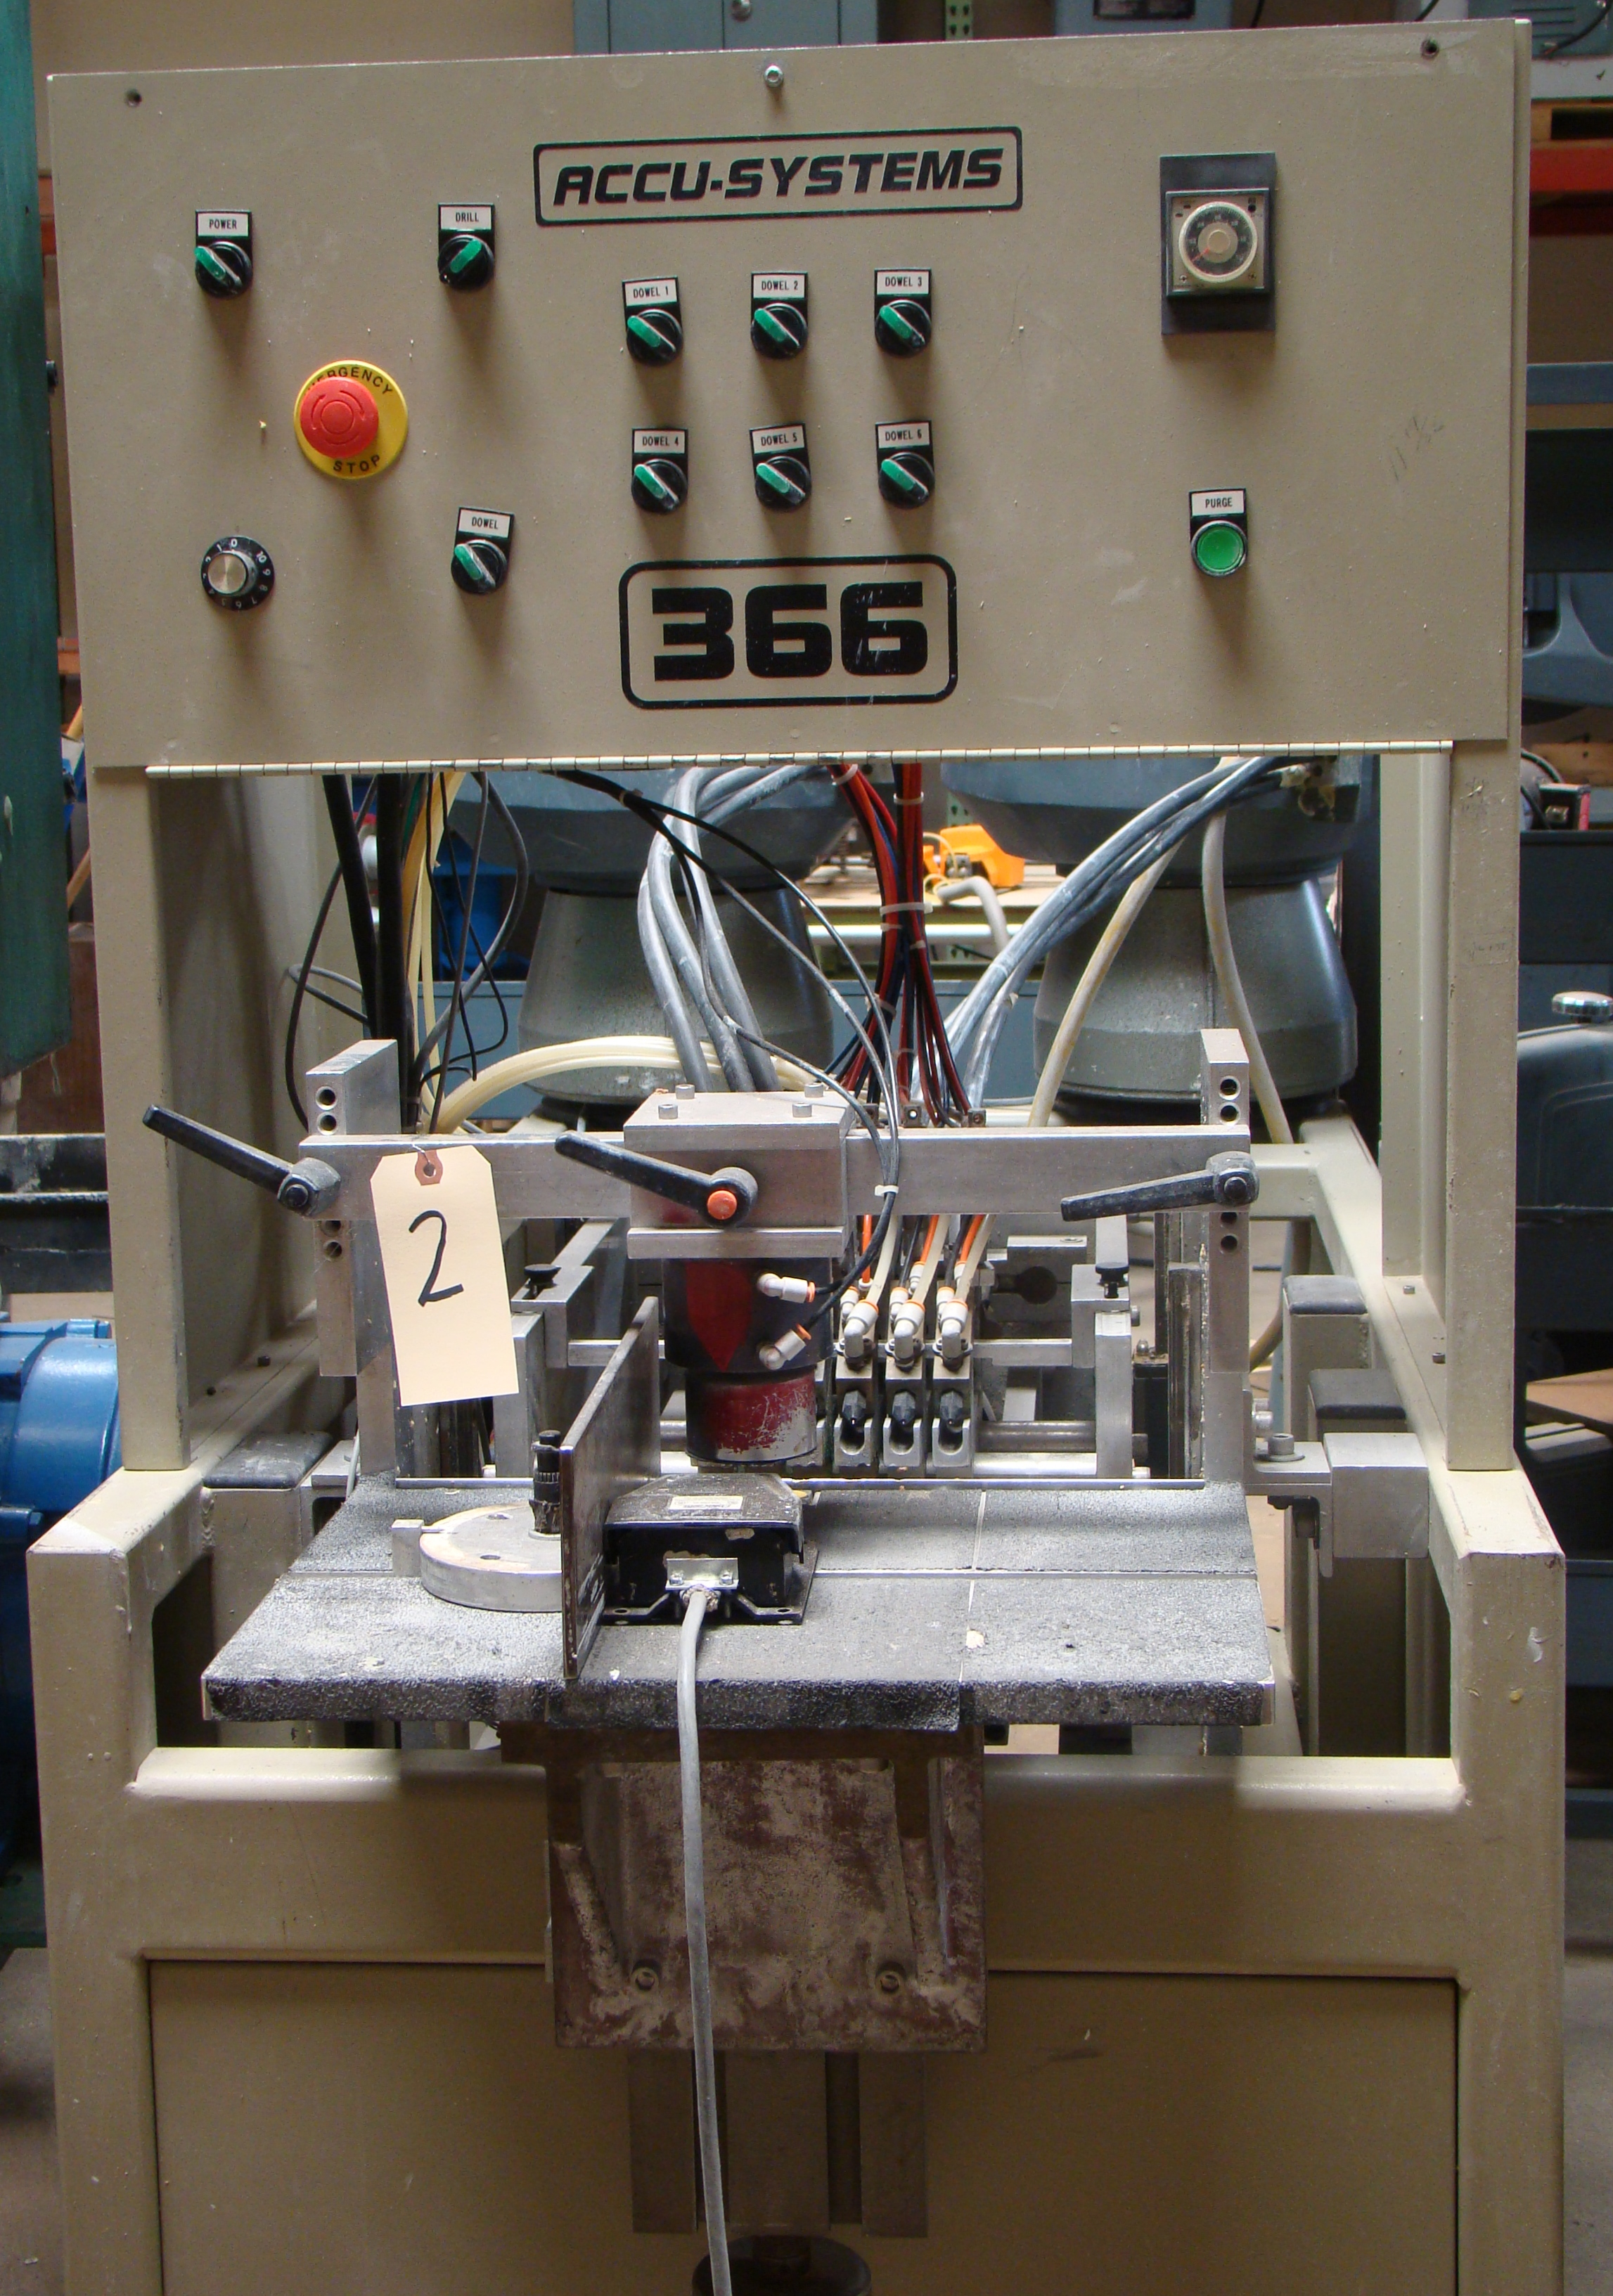 ACCU-Systems 366 Dowel Insertion Machine with Foot Pedal, Vibratory Bowl Feeders, Glue Pot 220 - Image 6 of 8